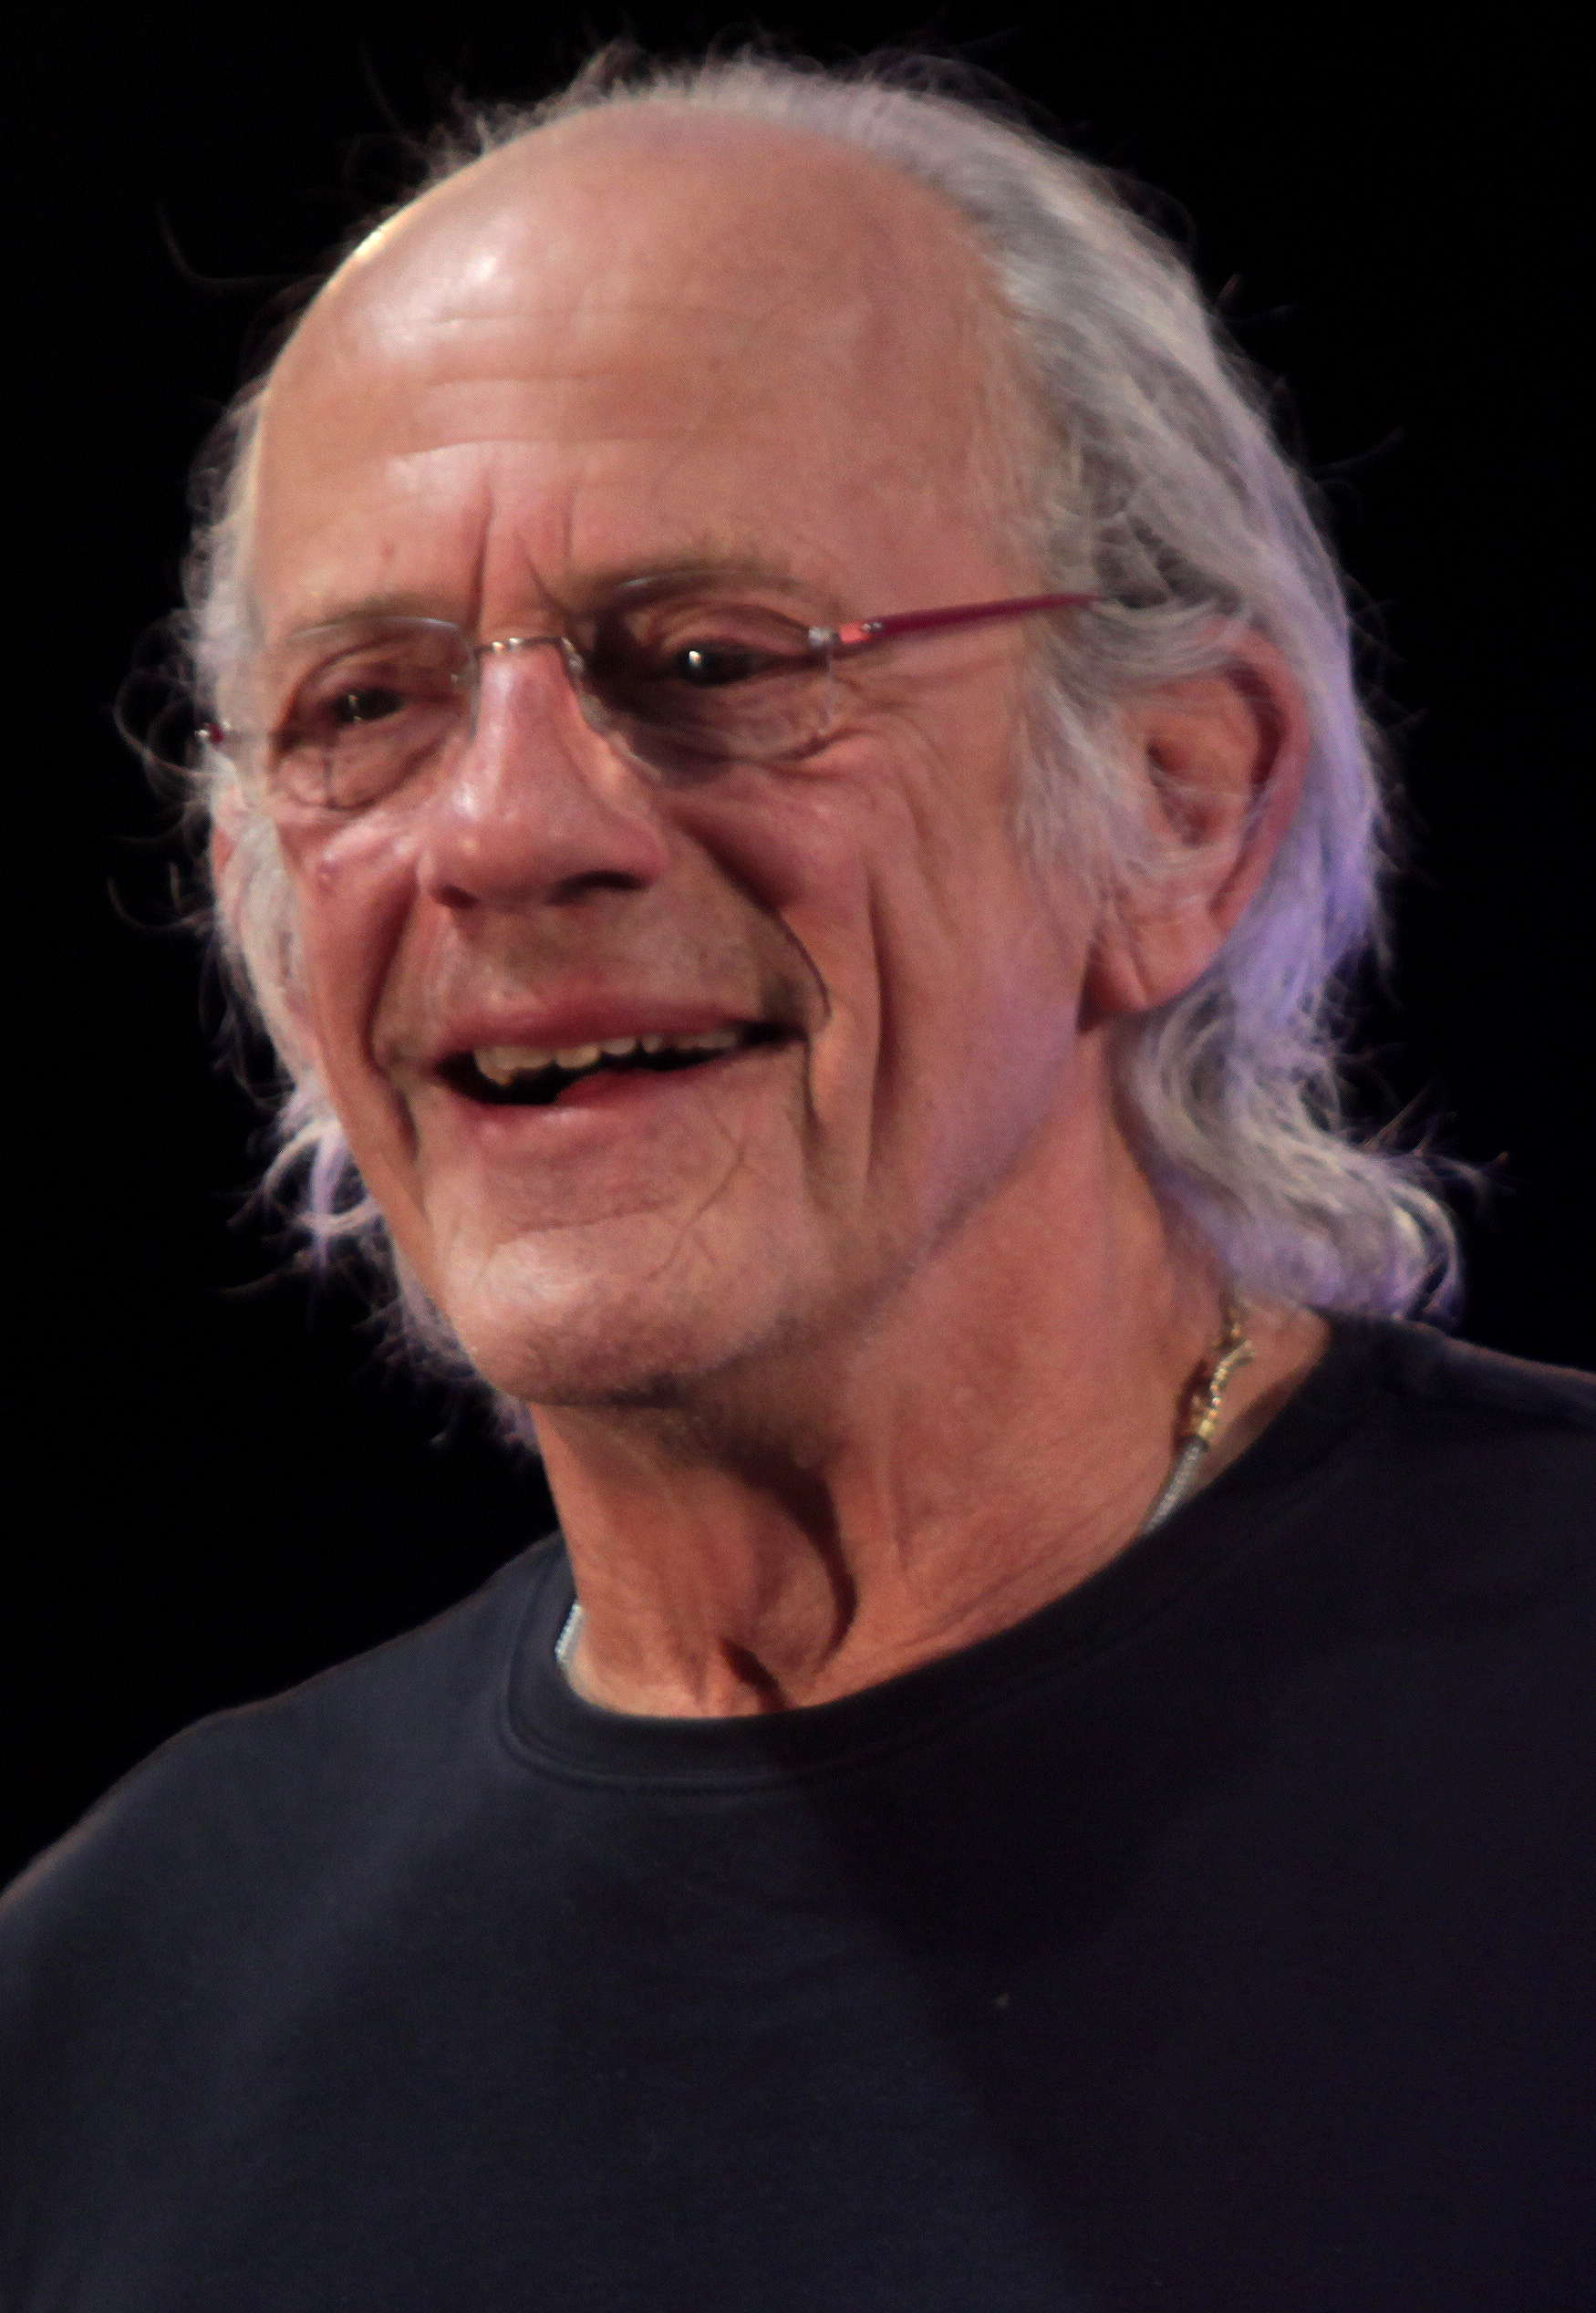 Christopher Lloyd Wikipedia